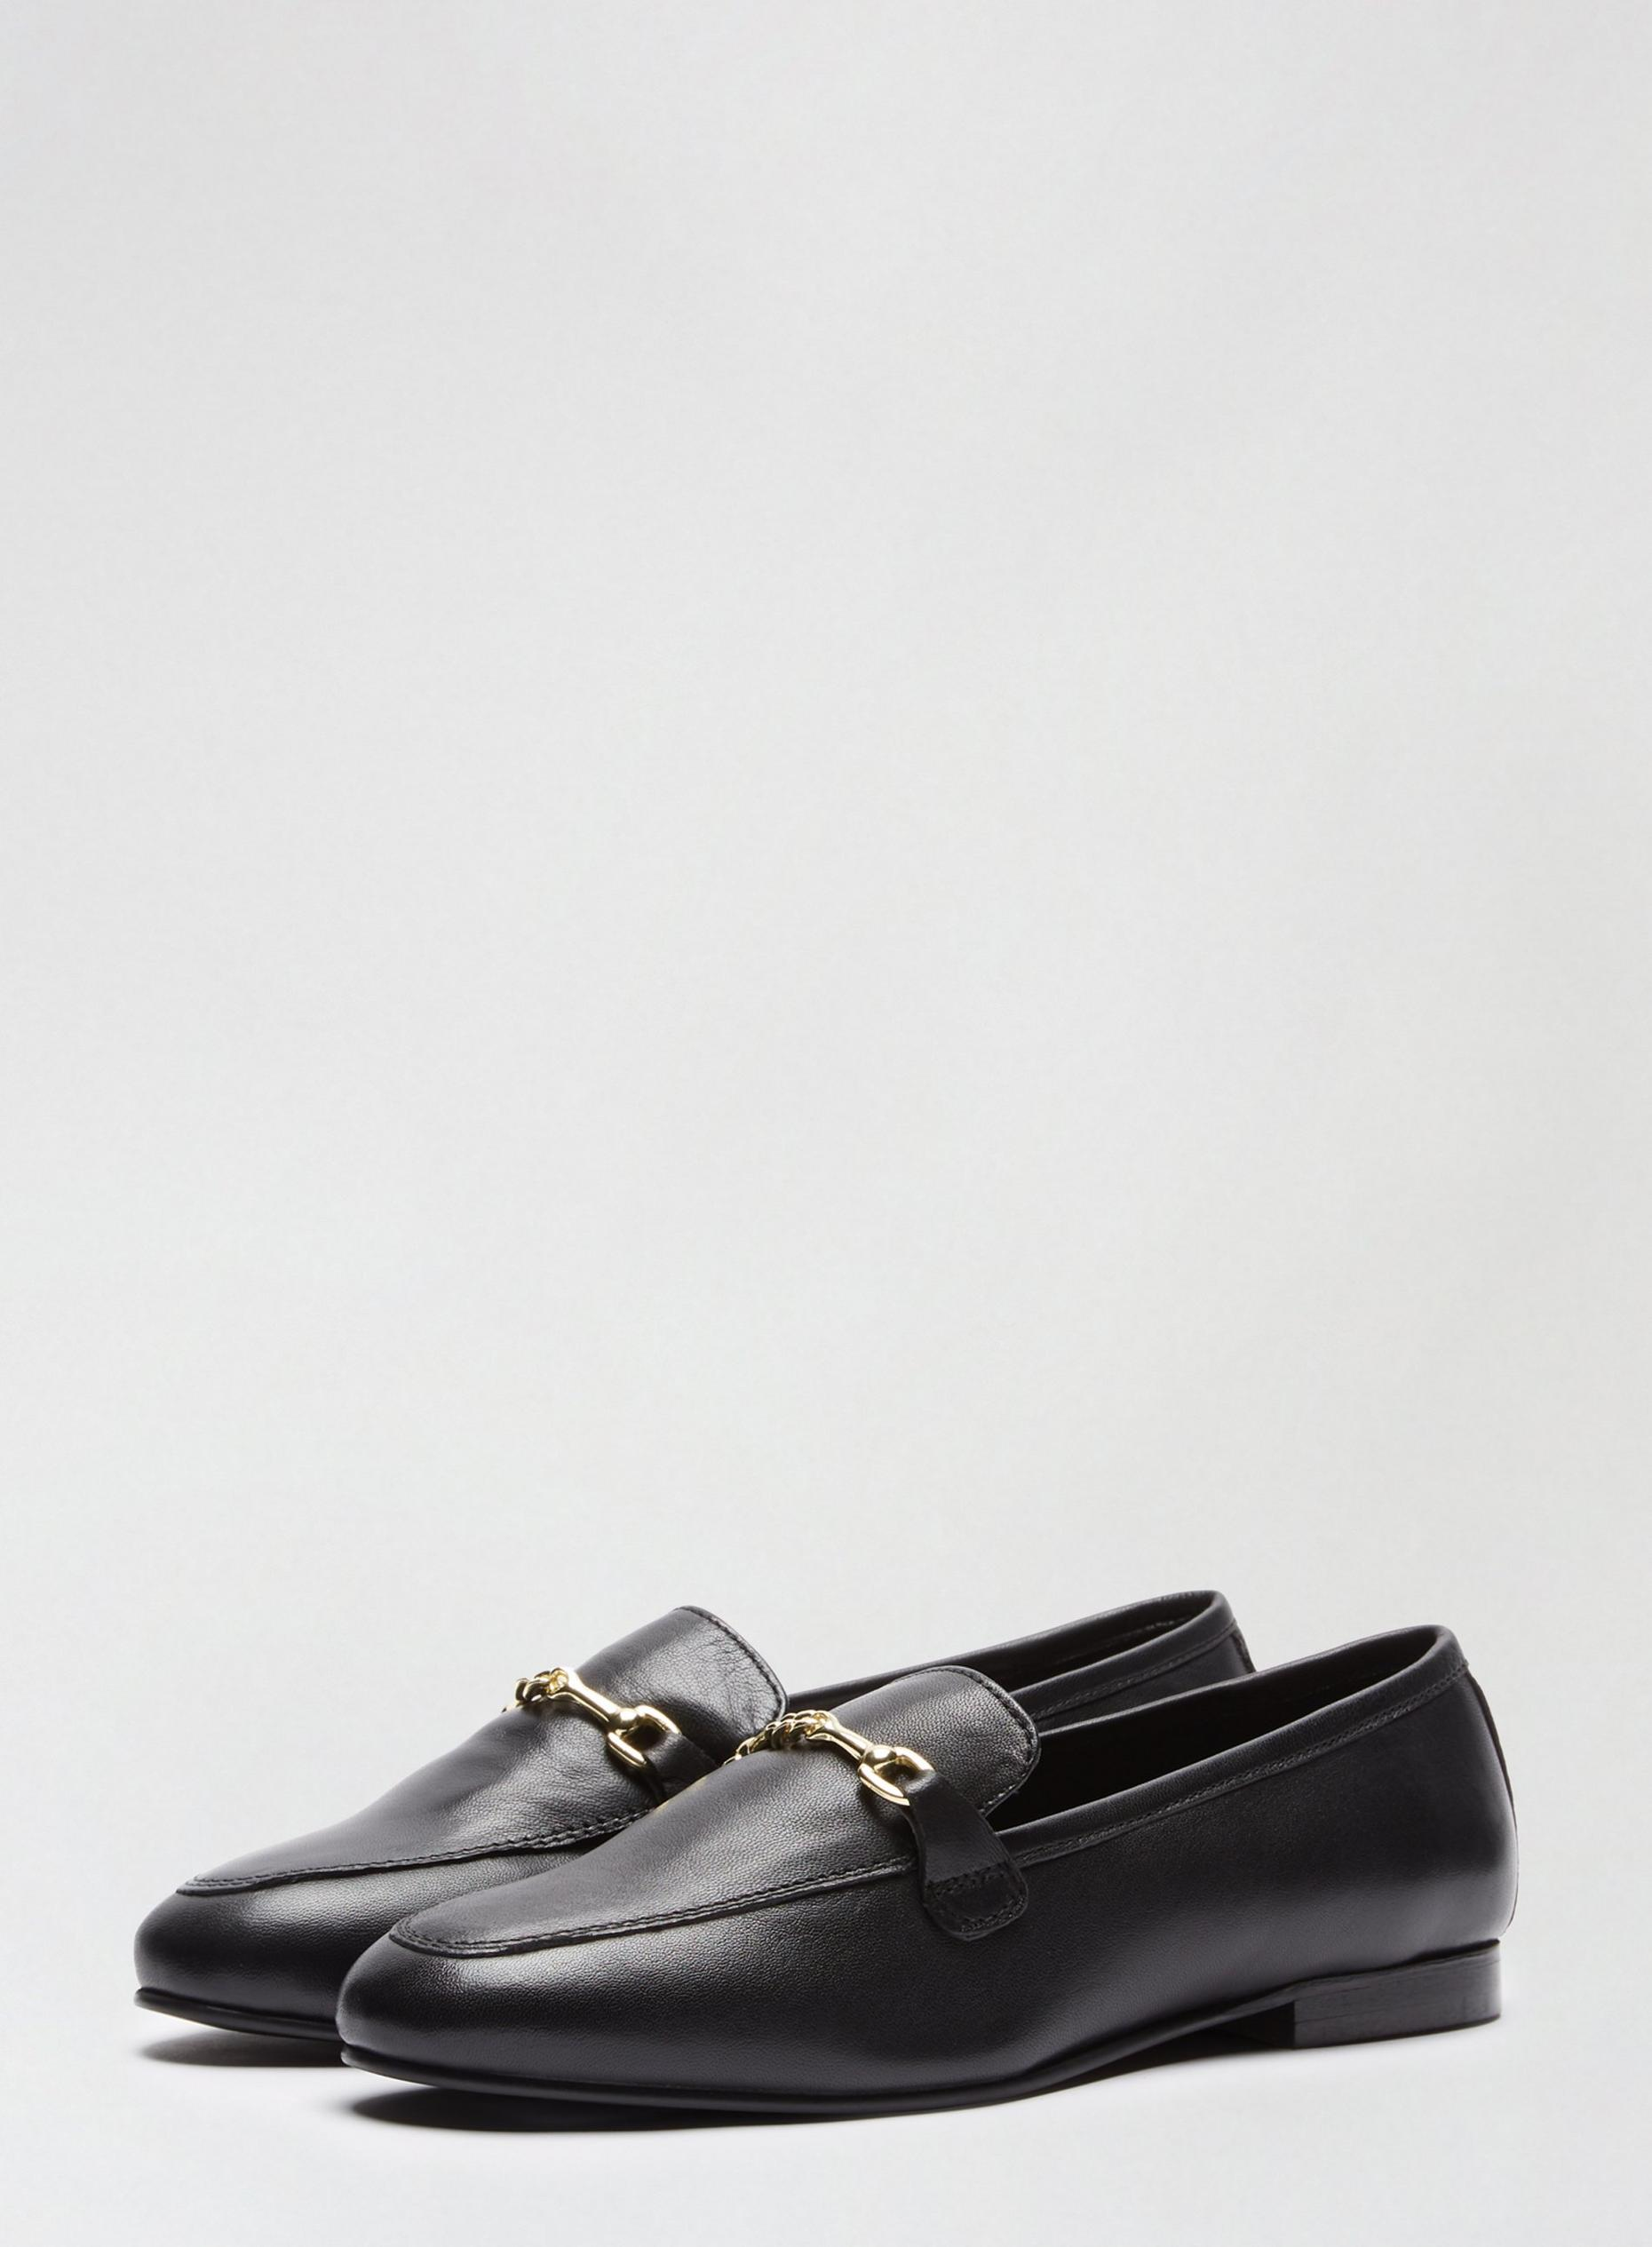 Leather Black Liza Loafers